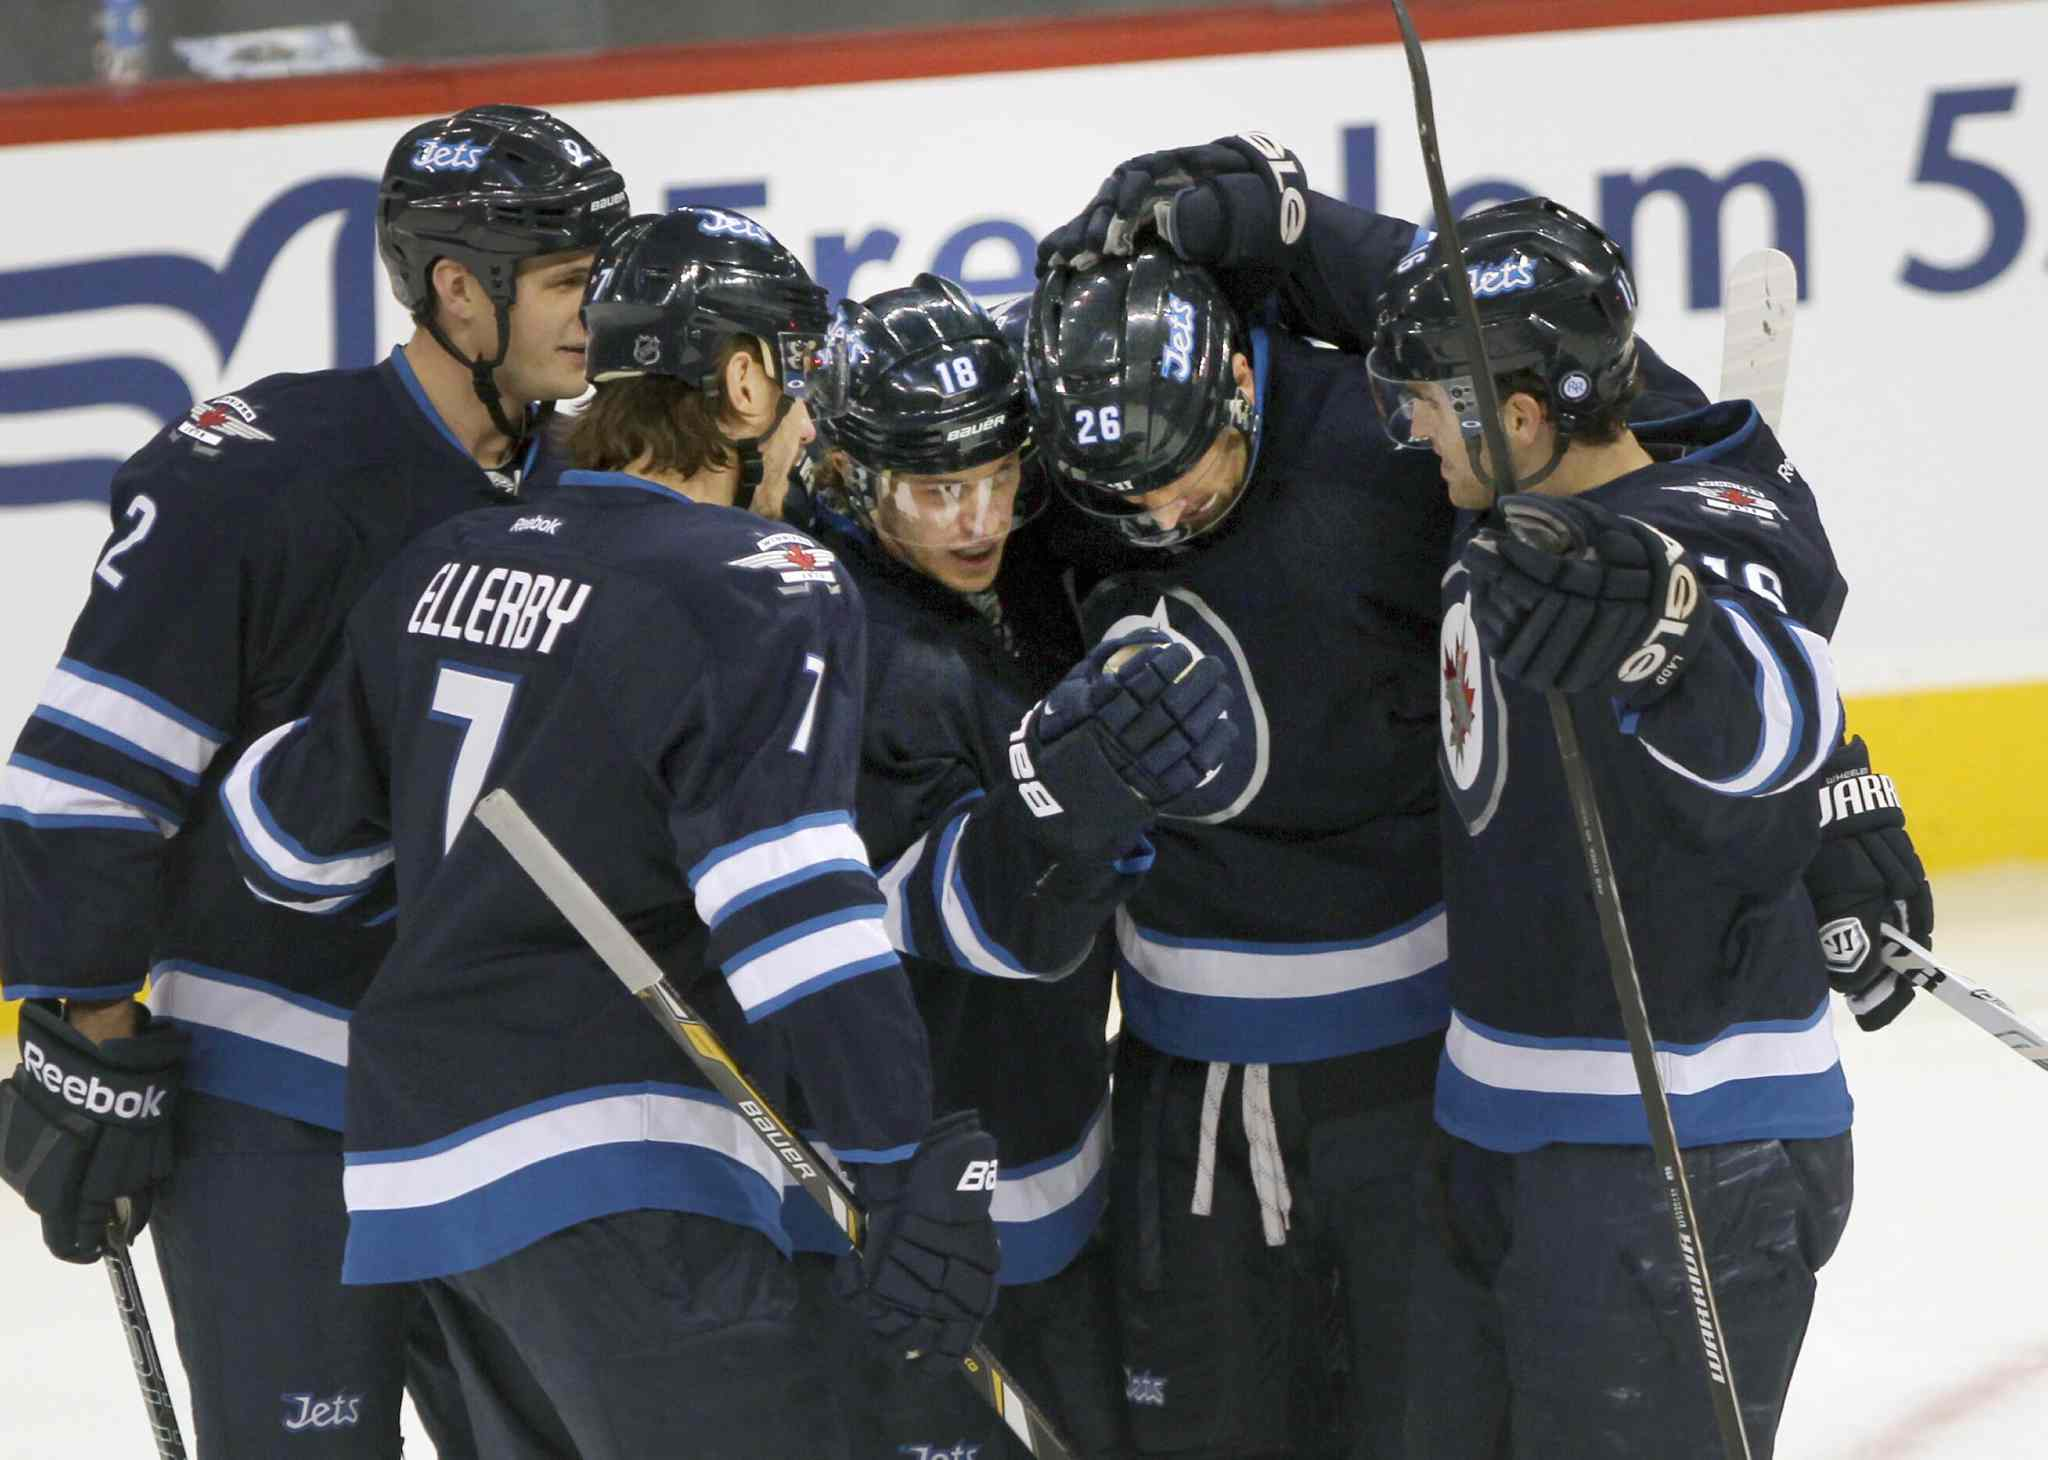 Winnipeg Jets Bryan Little (centre) is congratulated by teammates (from left) Adam Pardy, Keaton Ellerby, Blake Wheeler, and Andrew Ladd after his first-period goal.